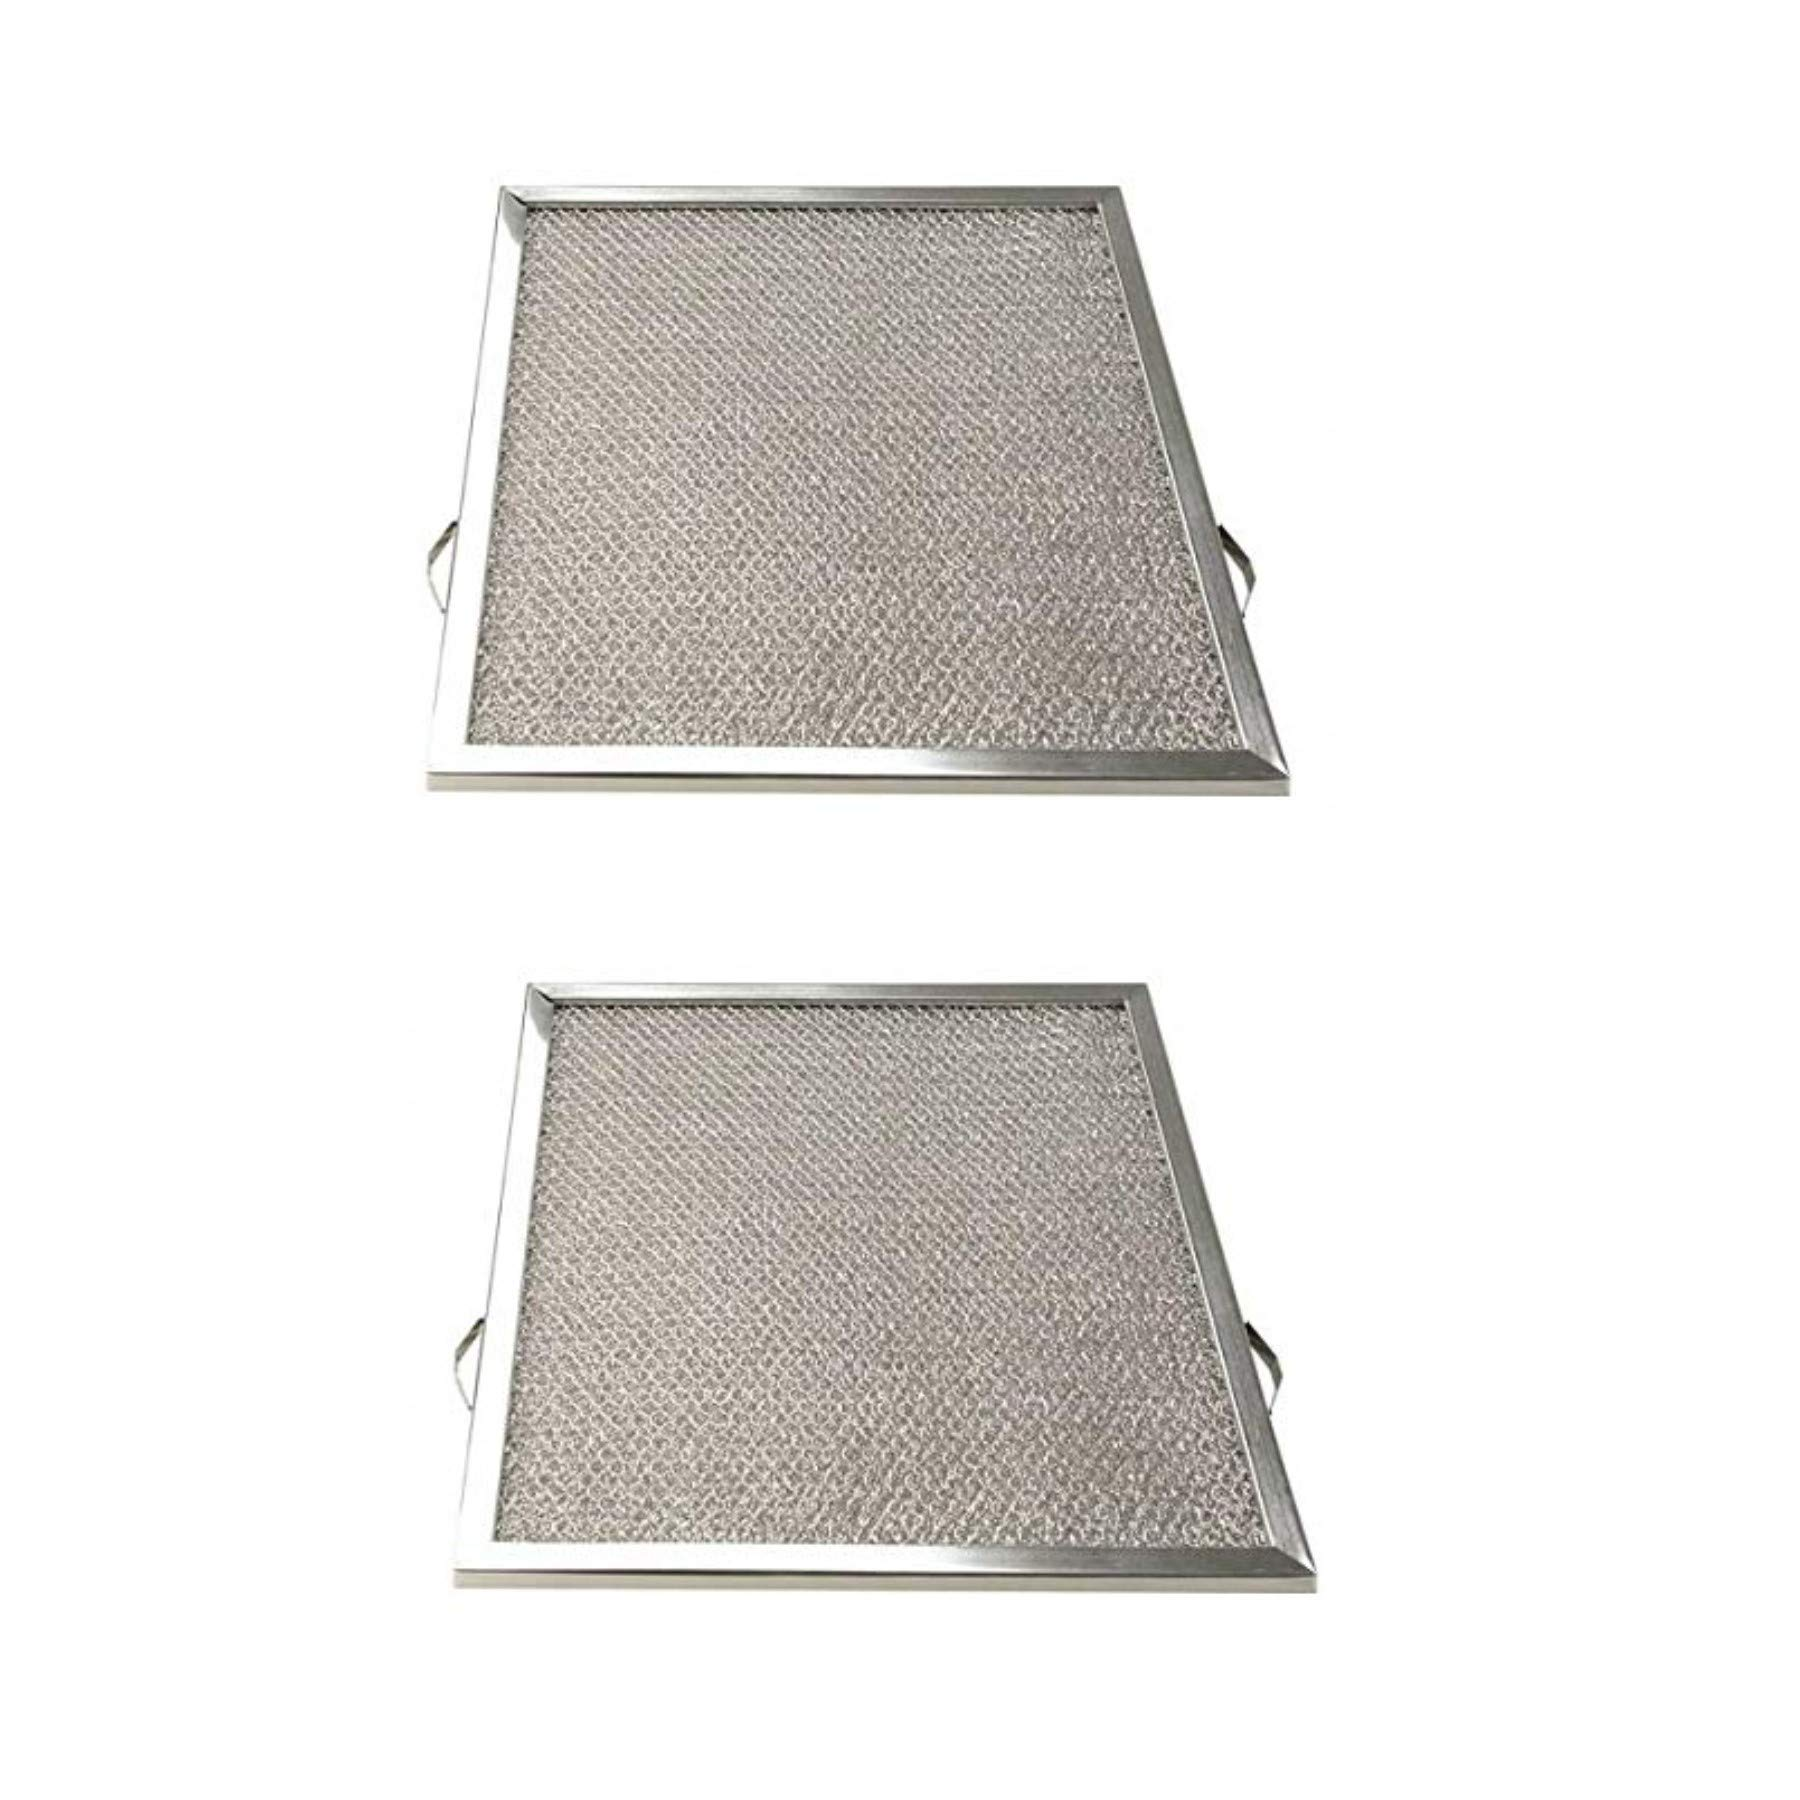 Replacement Aluminum Filters Compatible with Air King GF 06S,G 8606,  10 1/4 x 12 x 3/8 (2 TS OPO LS